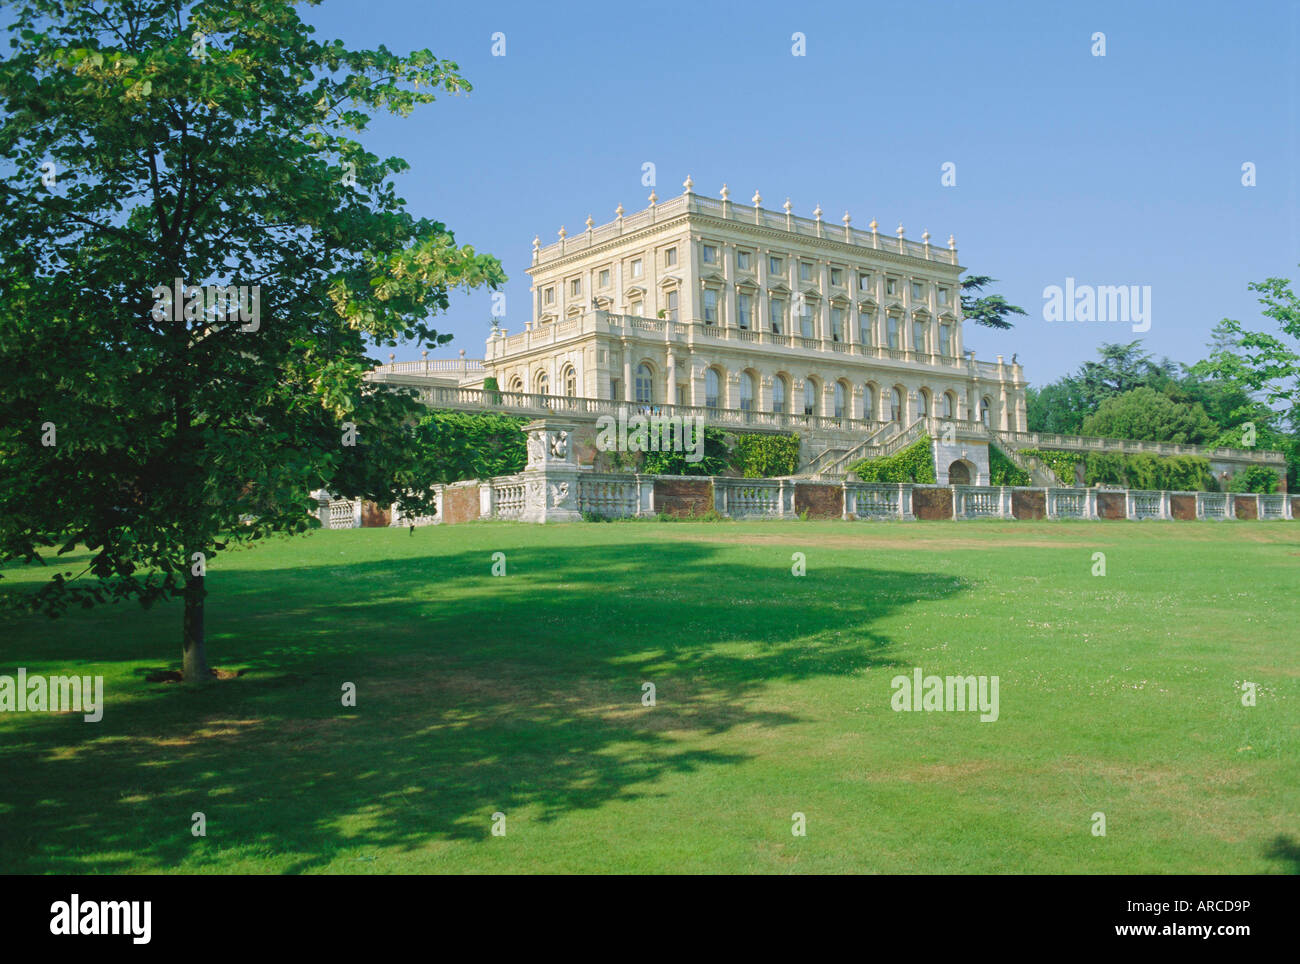 Cliveden House (National Trust), built 1851 by Sir Charles Barry, near Taplow, Buckinghamshire, England, UK - Stock Image